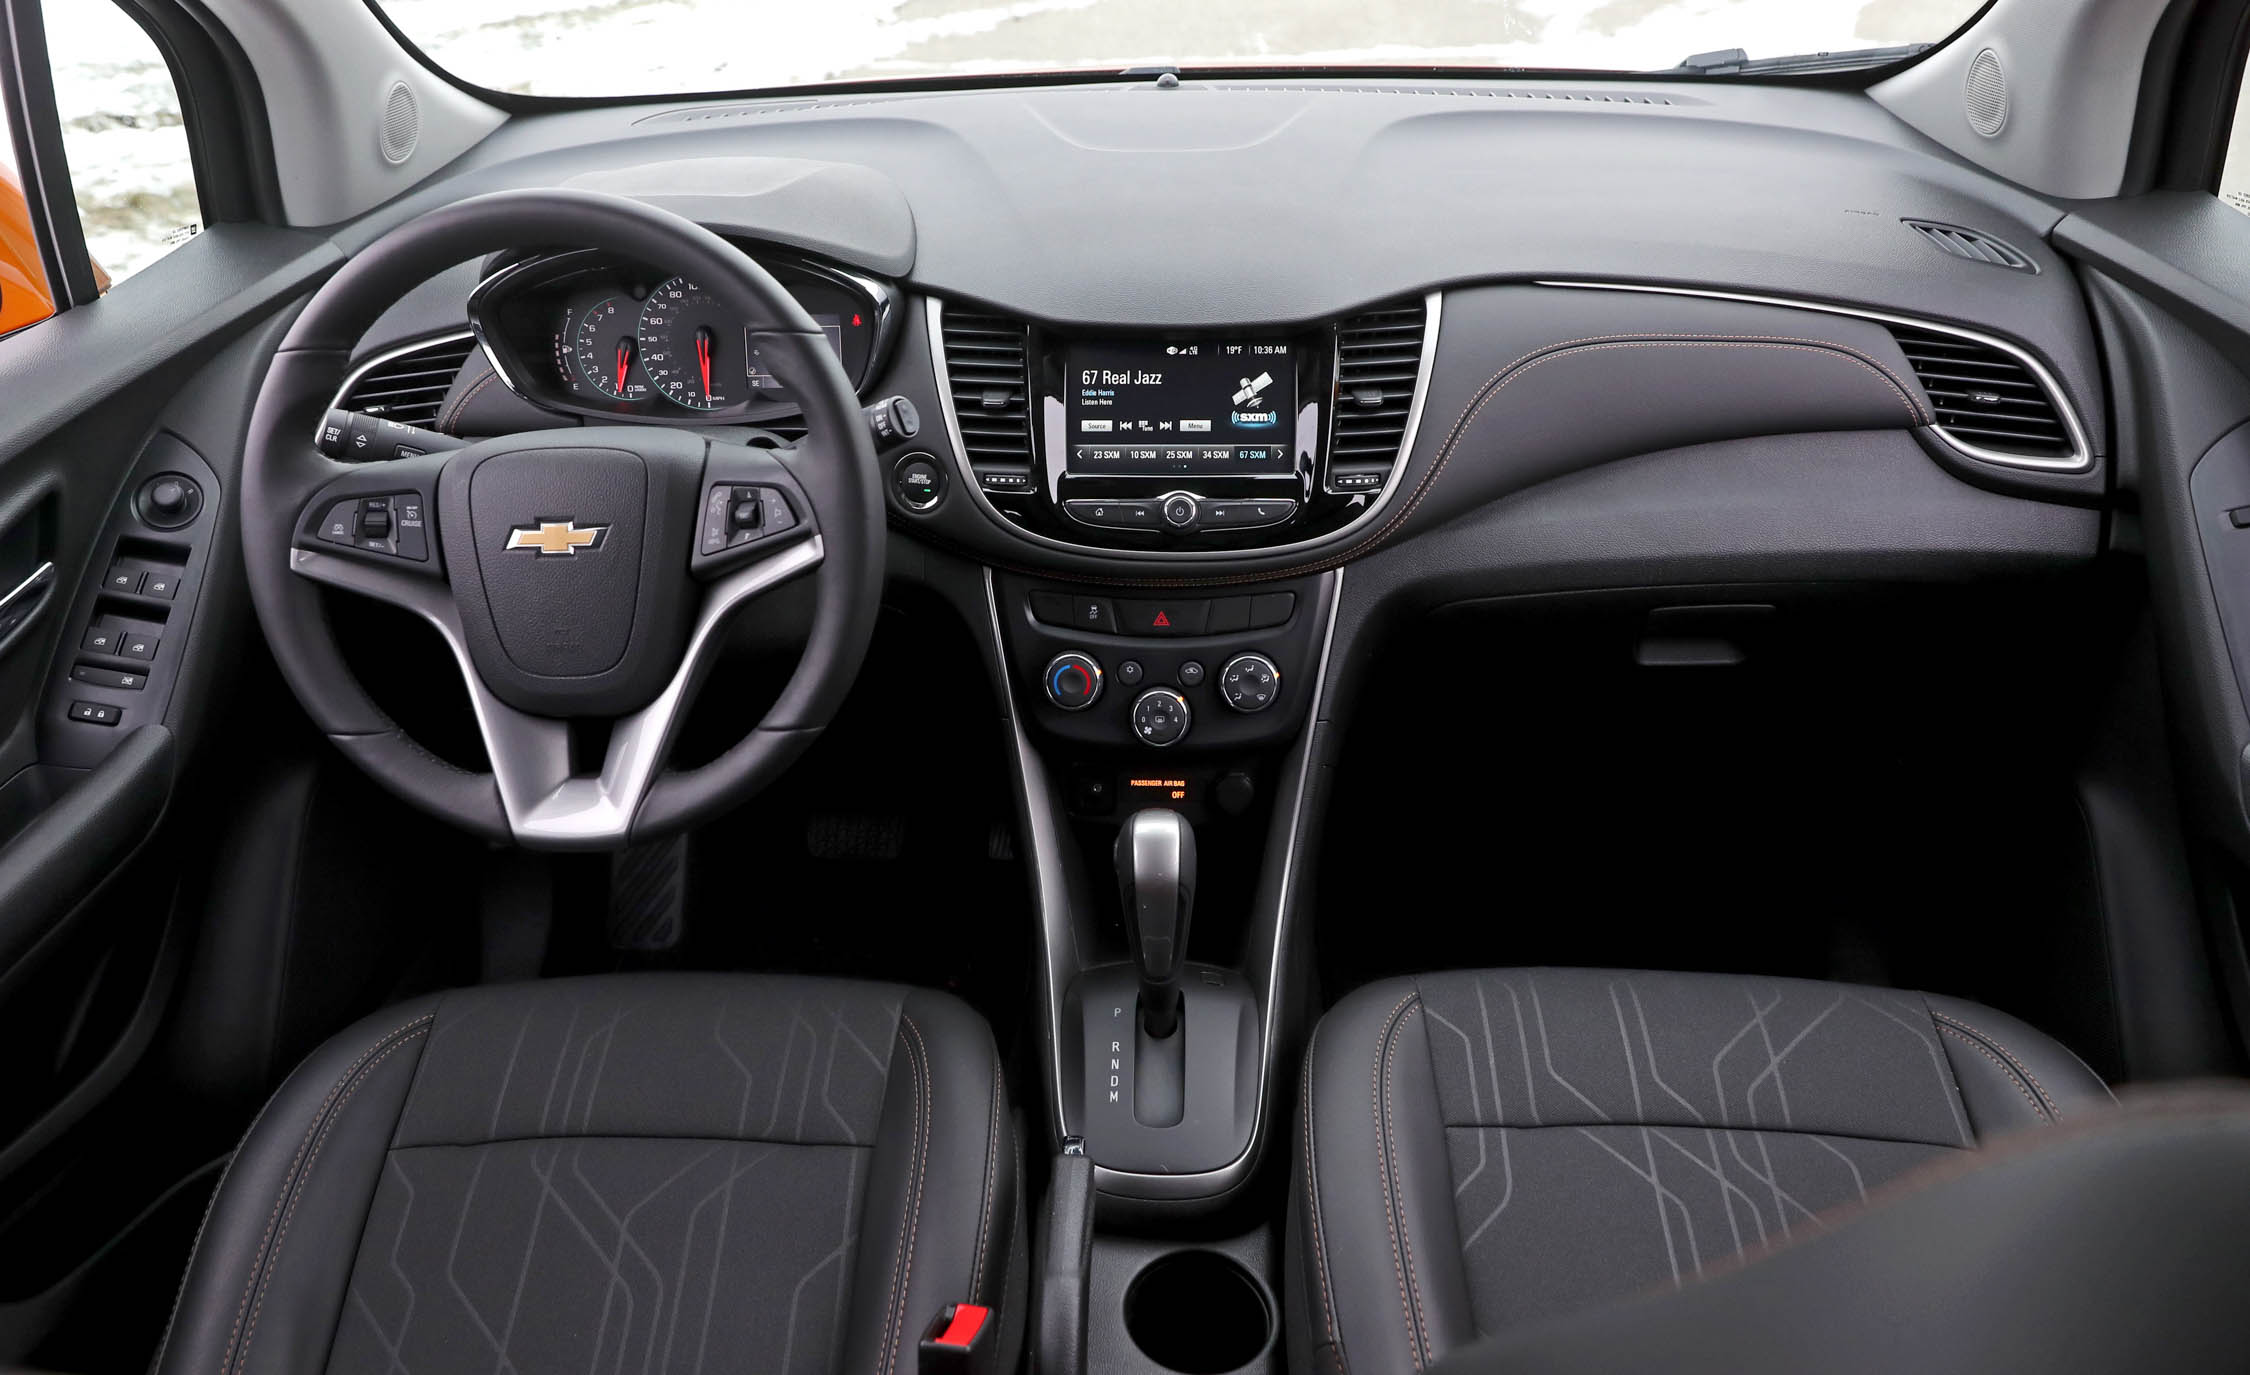 2017 Chevrolet Trax Interior Steering And Dashboard (View 24 of 47)